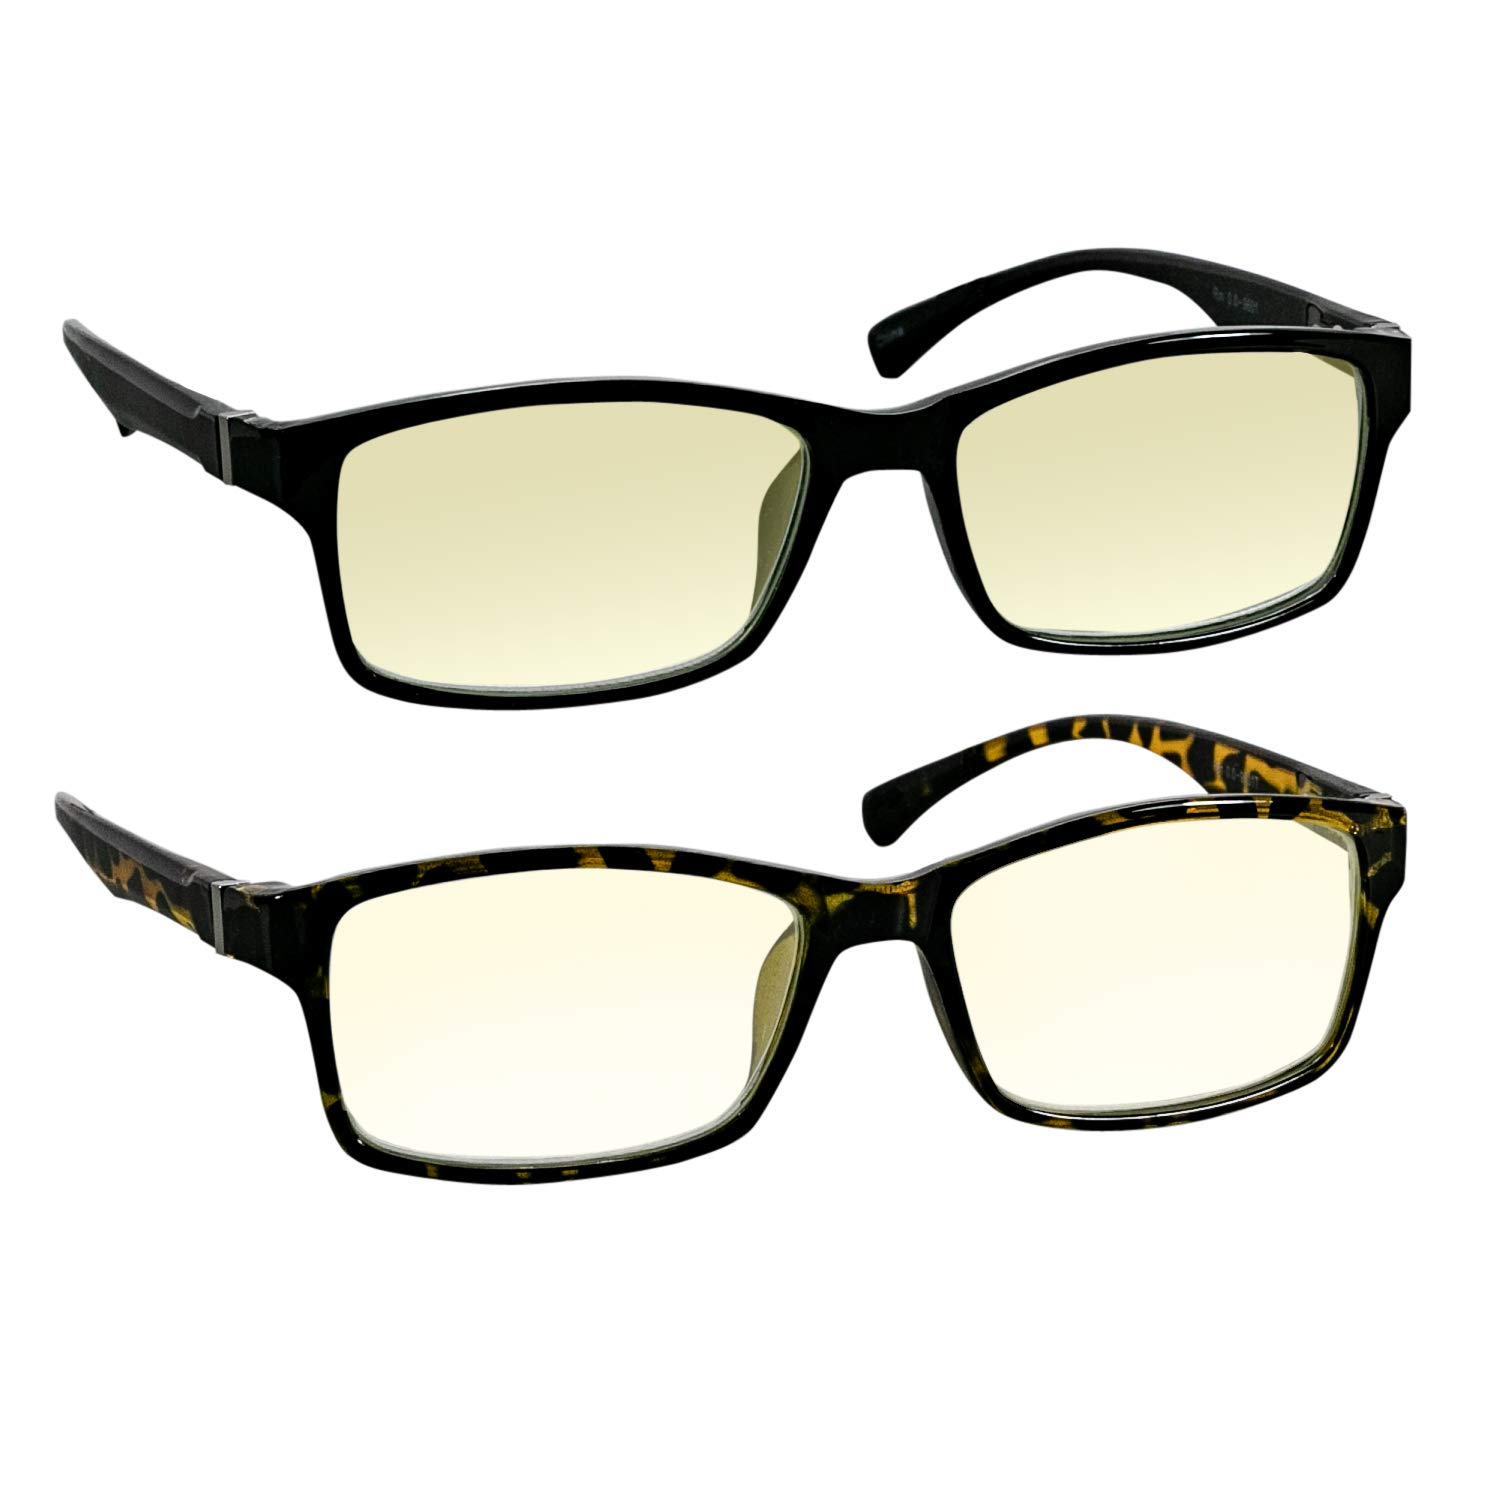 98b28d88d31 Amazon.com  Computer Reading Glasses 2.75 Black Tortoise Protect Your Eyes  Against Eye Strain